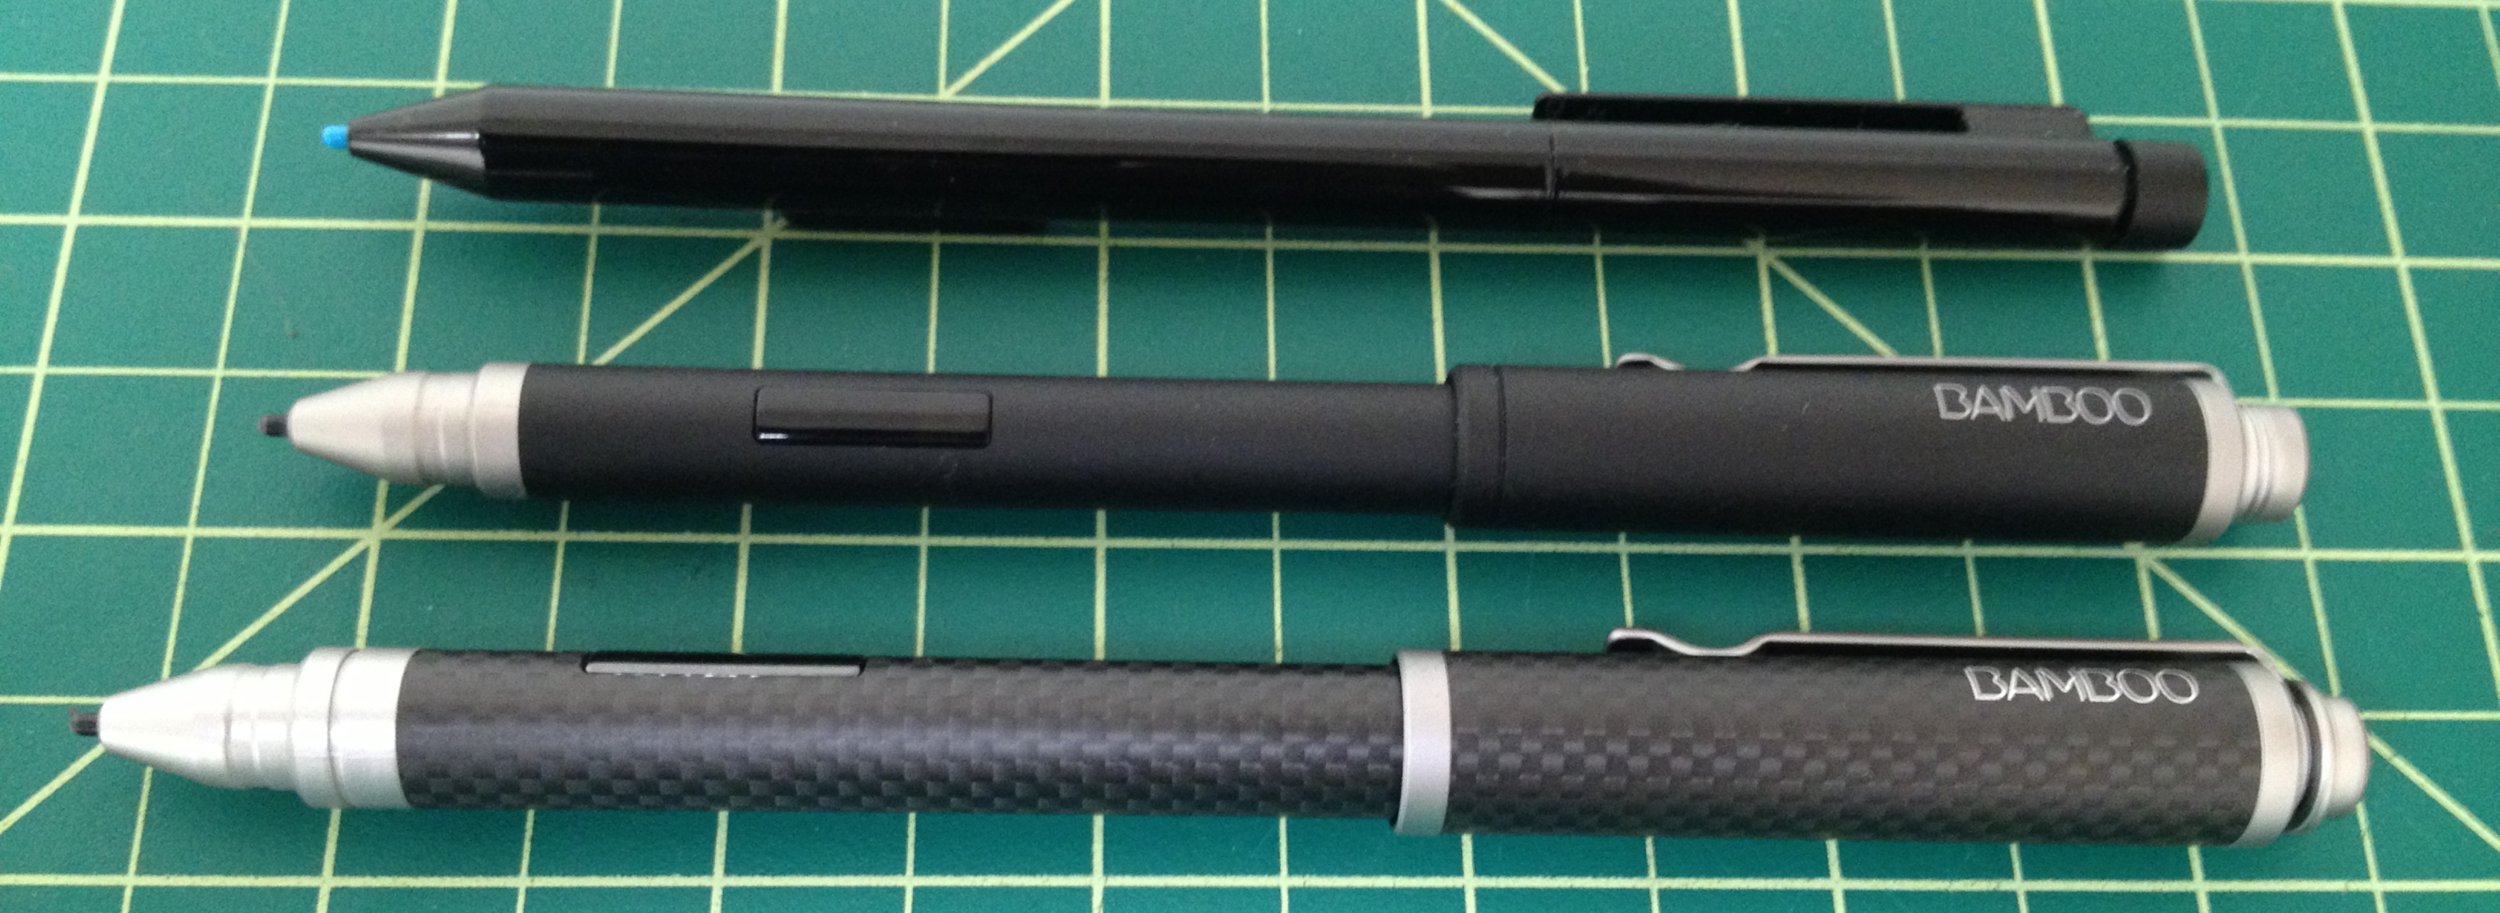 The Bamboo Stylus feel - Carbon is significantly larger than the standard pen and its Black cousin.